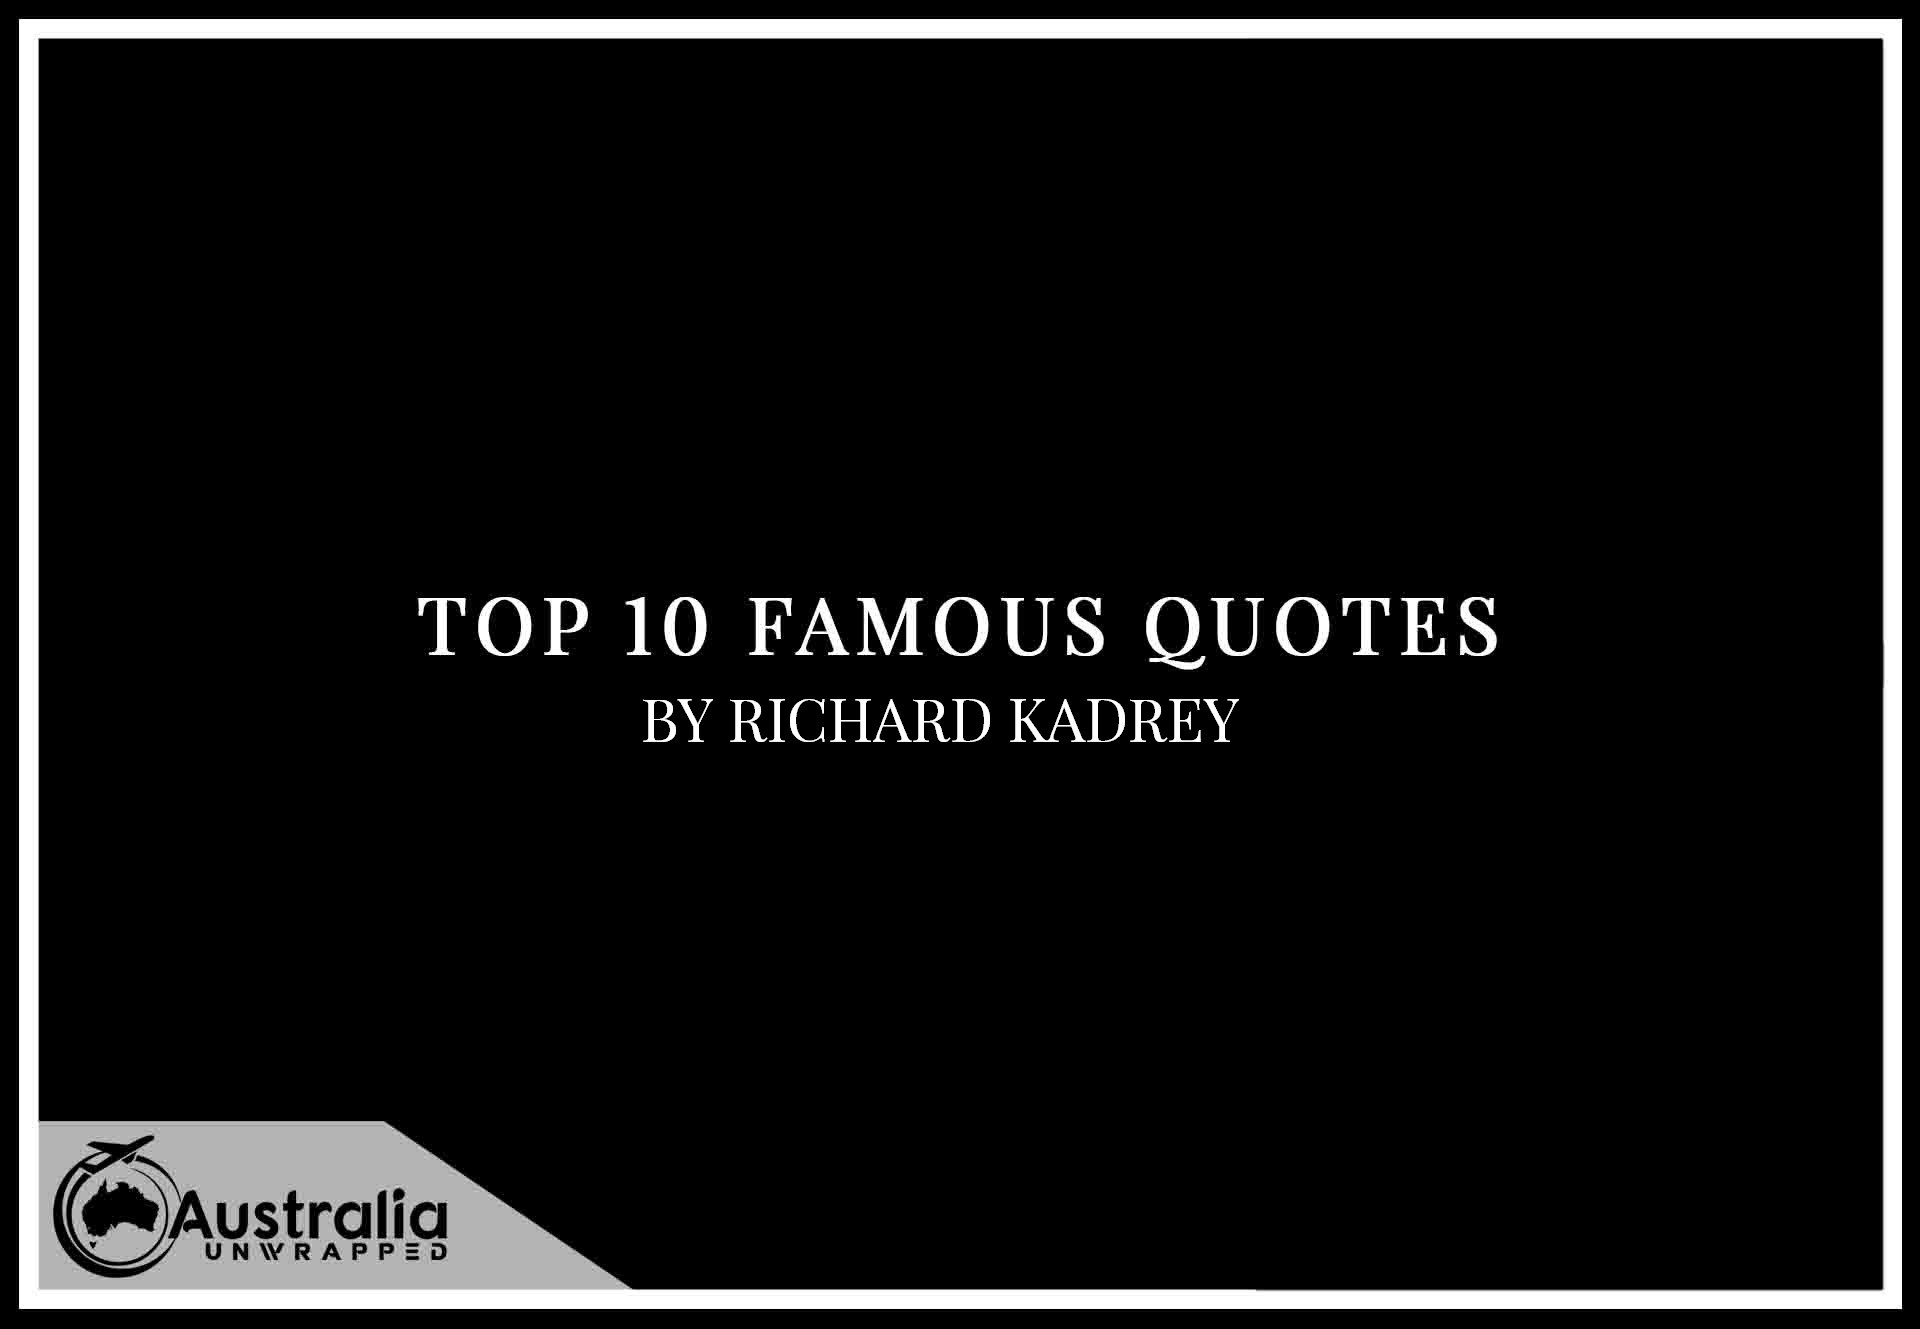 Richard Kadrey's Top 10 Popular and Famous Quotes